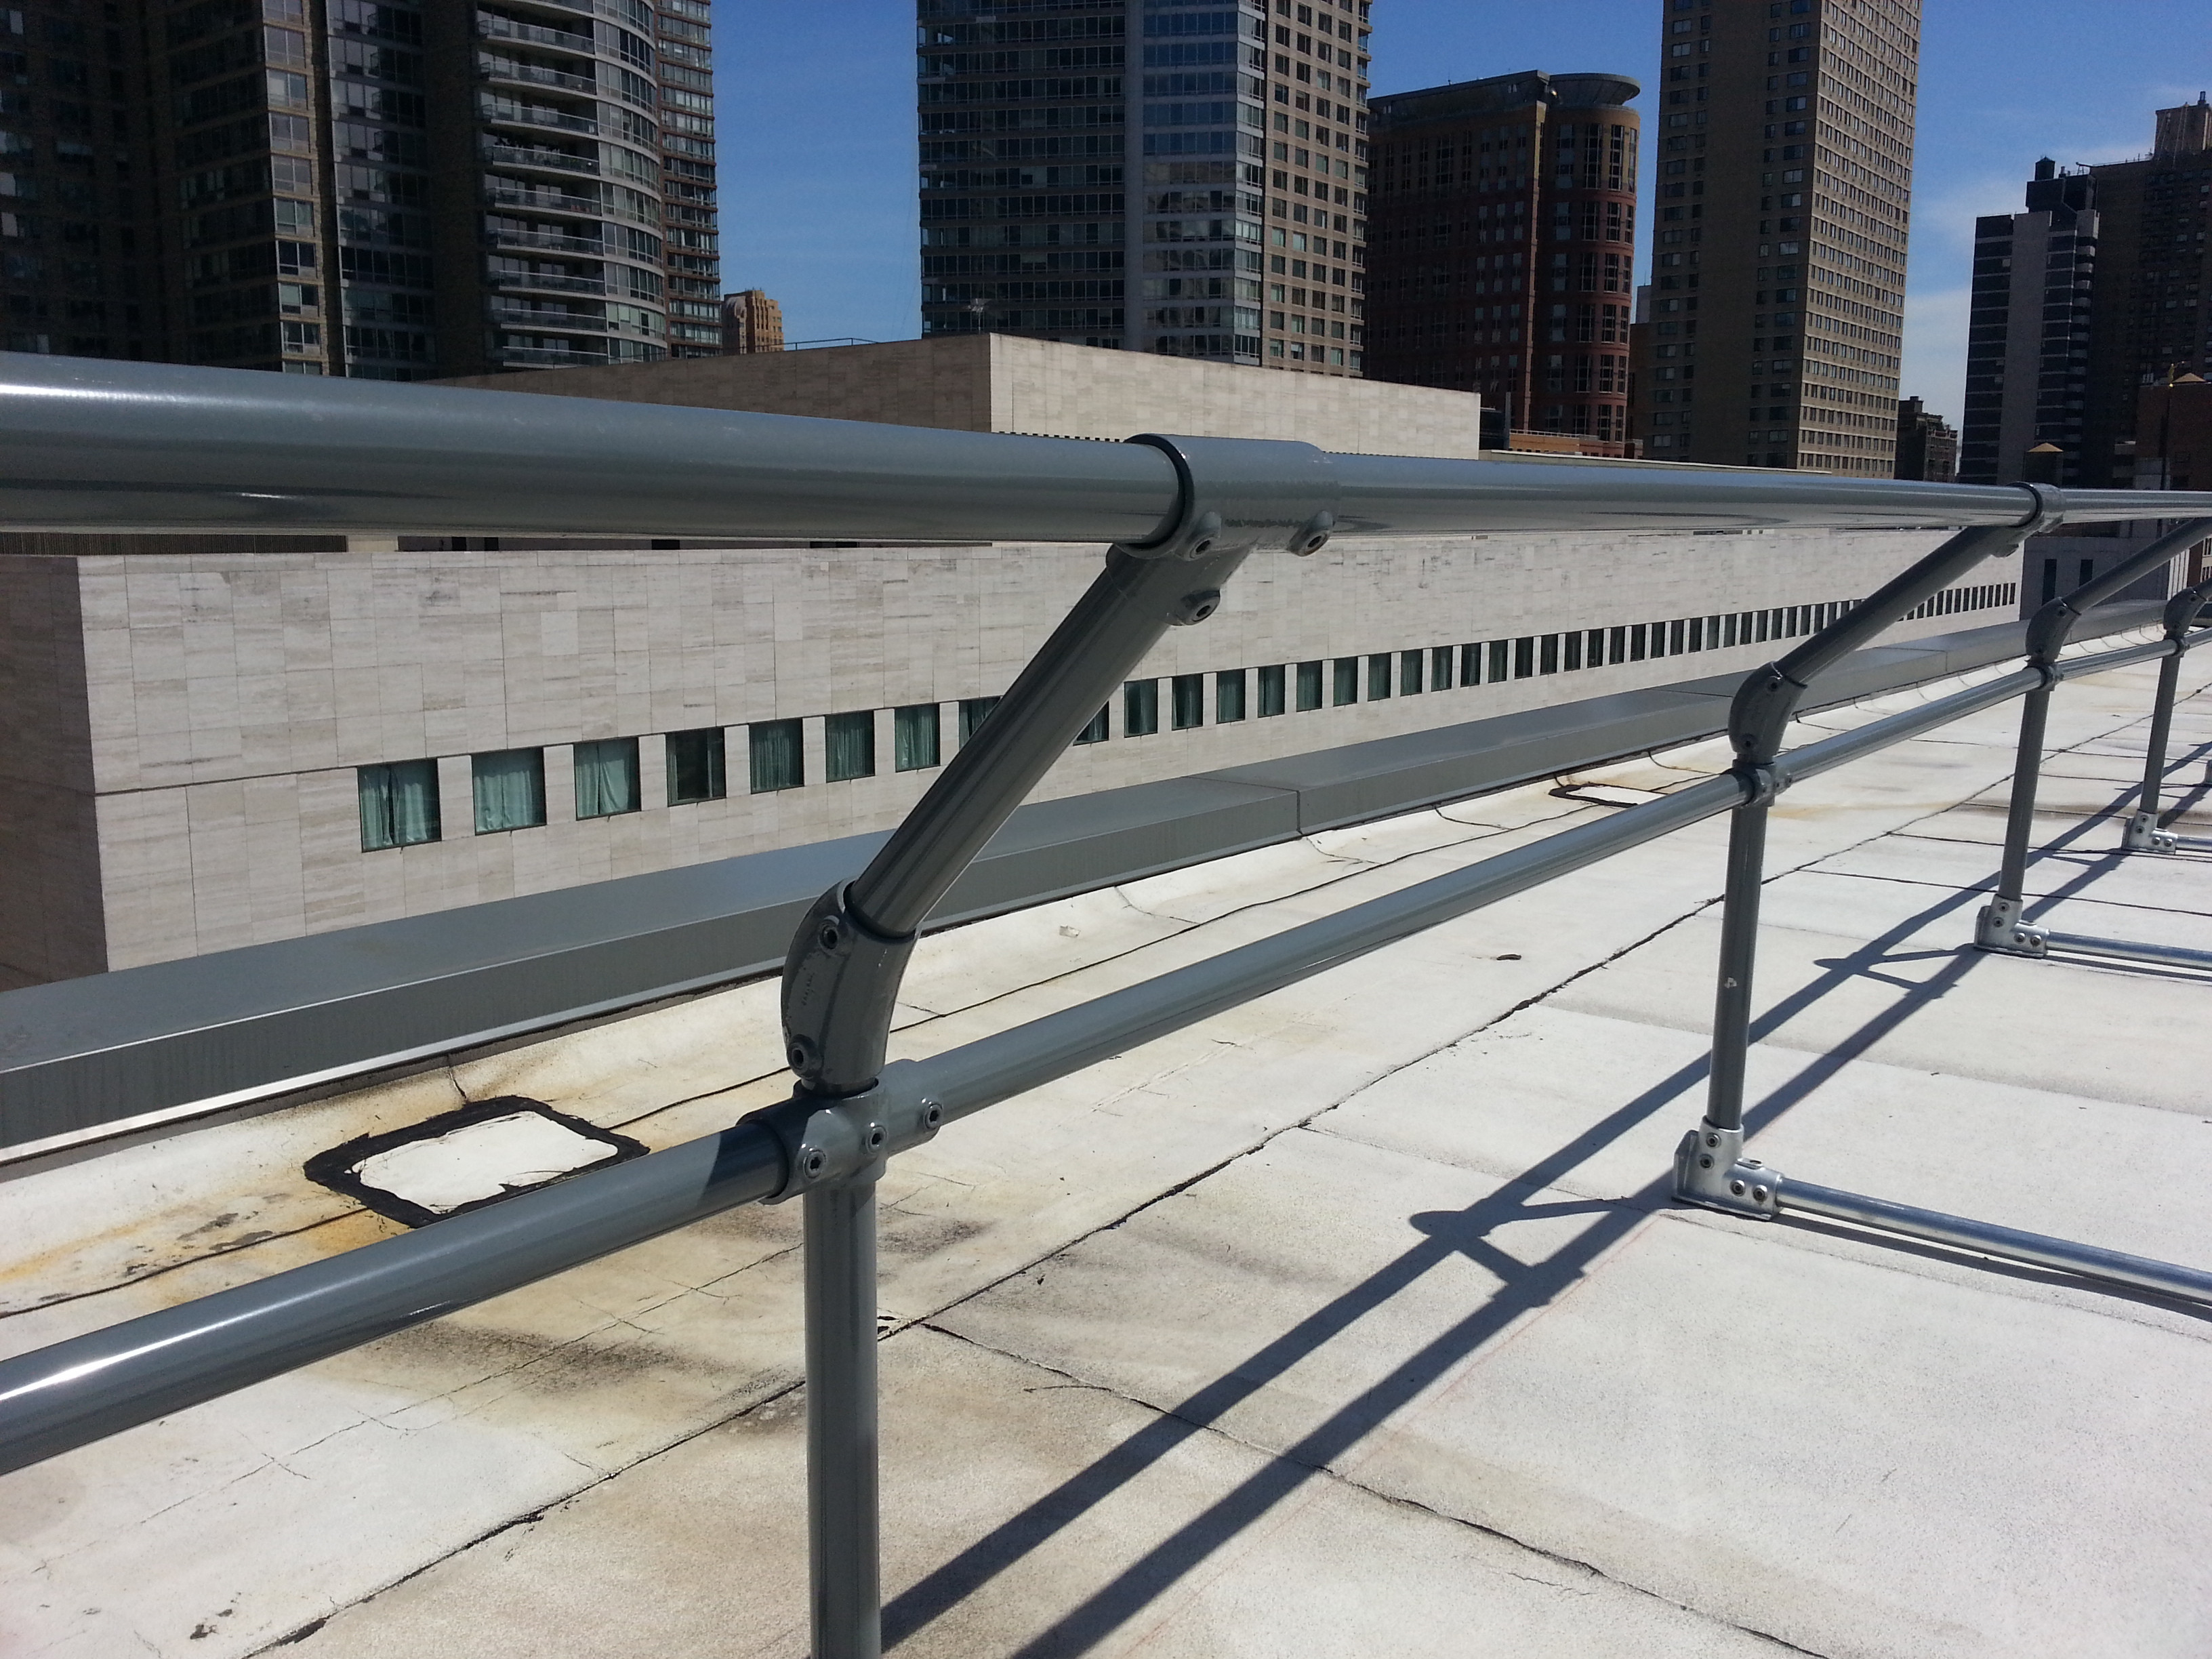 Railing Built With Fittings Vs Fabricated Pipe Railing